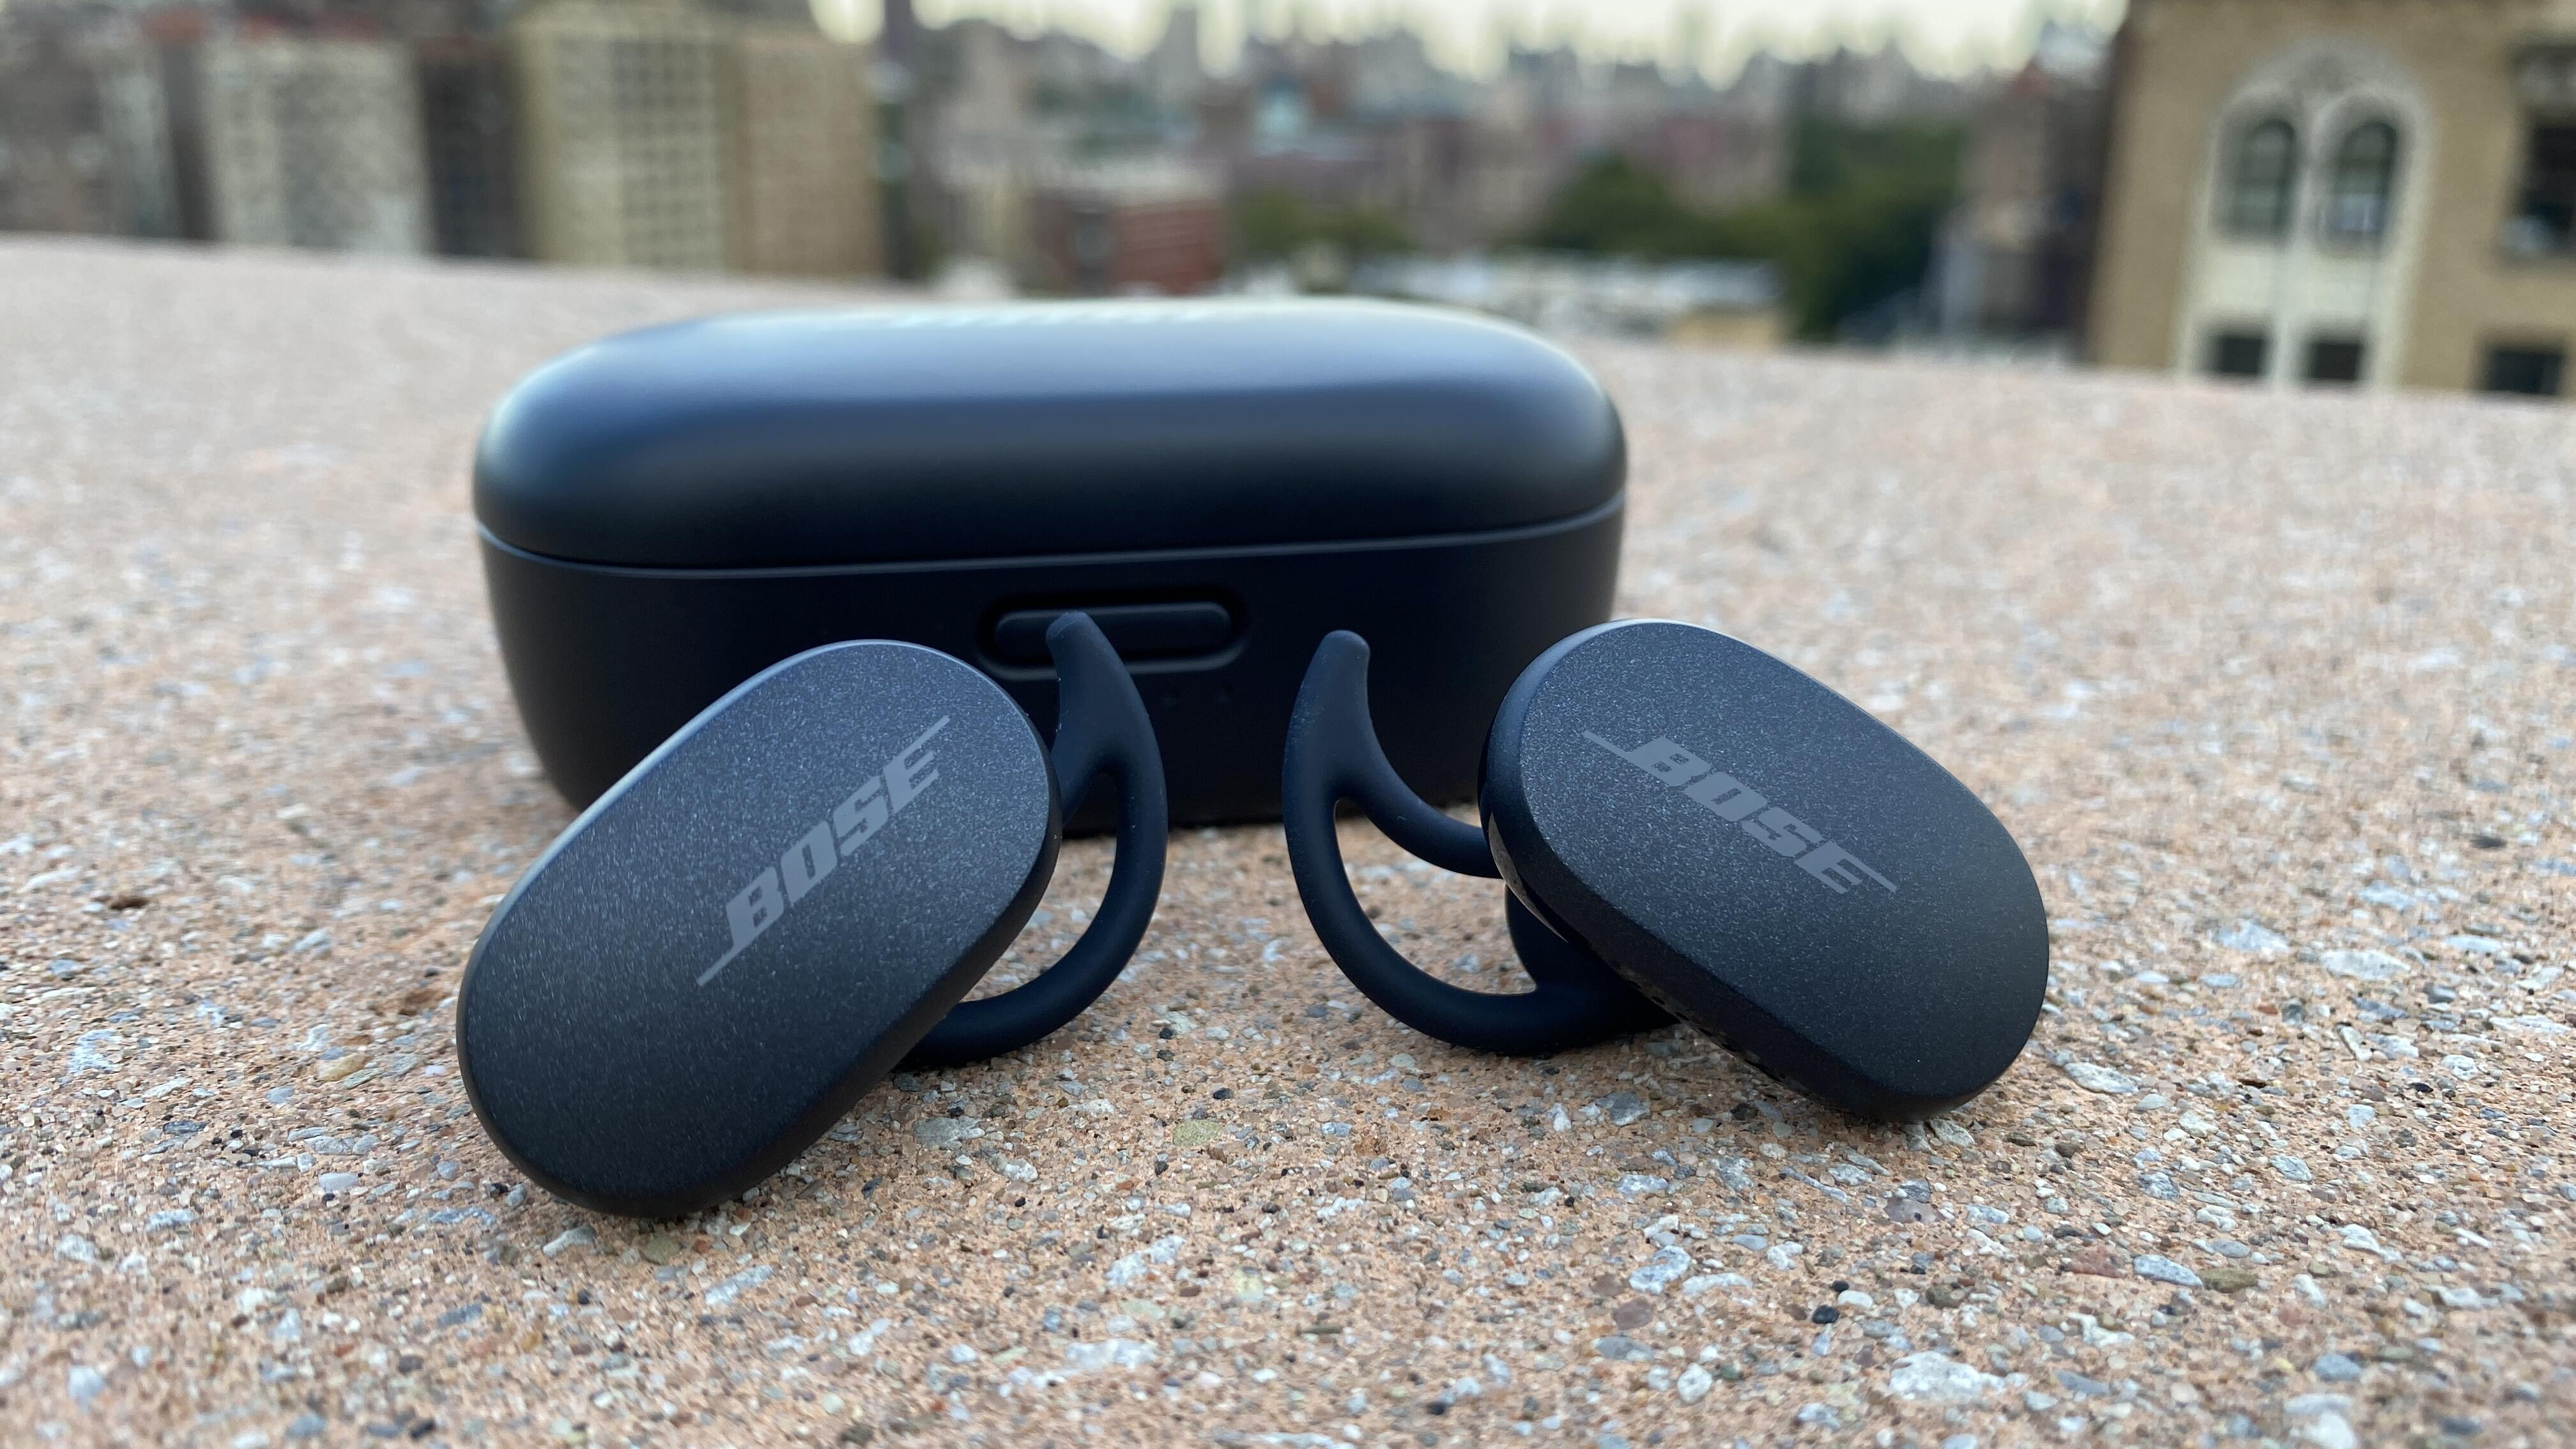 Bose QuietComfort Earbuds are $80 off, hitting new low price - CNET